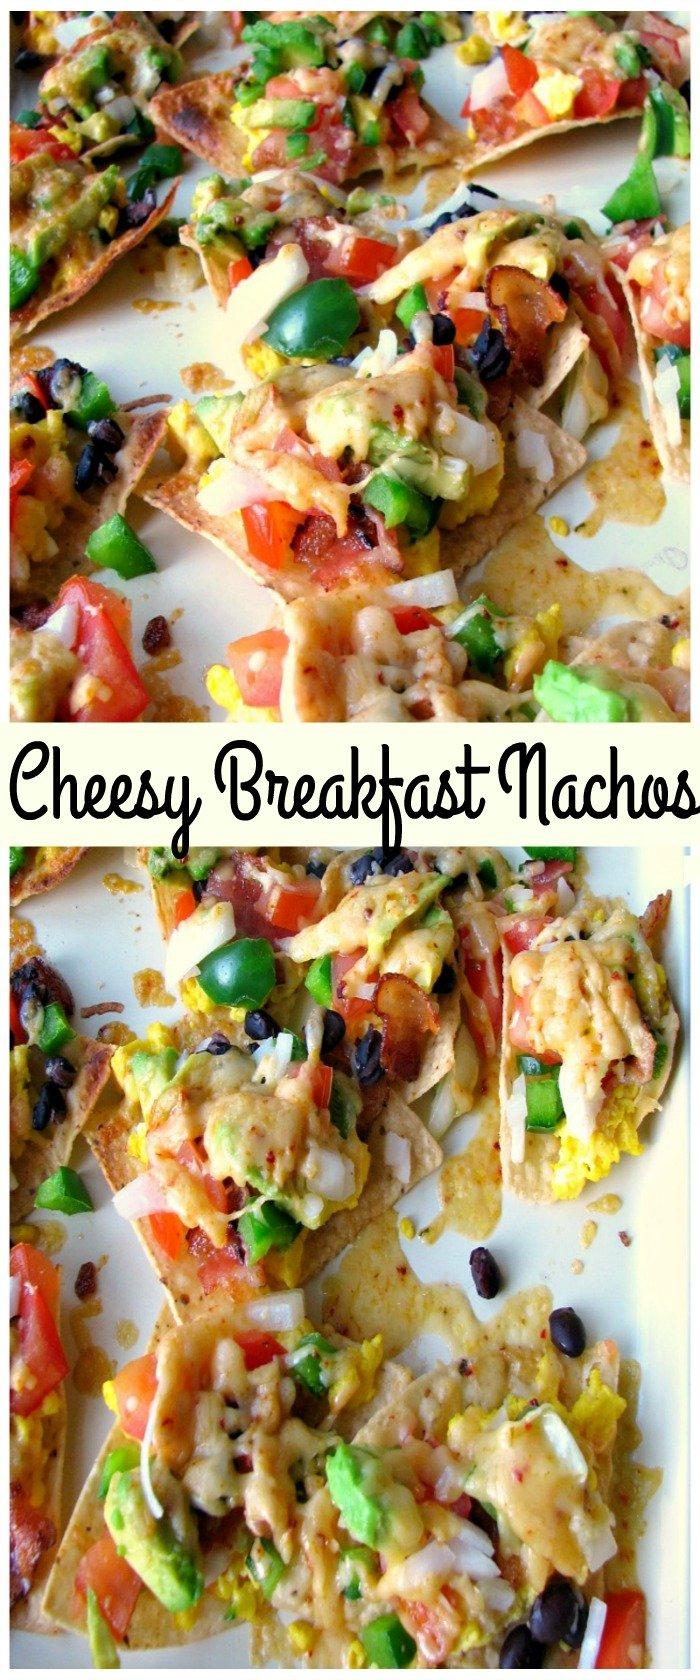 These Cheesy Breakfast Nachos are topped with scrambled eggs, bacon, tomatoes, bell peppers, onions, chipotle cheddar, and black beans. Great for brunch, or a party!